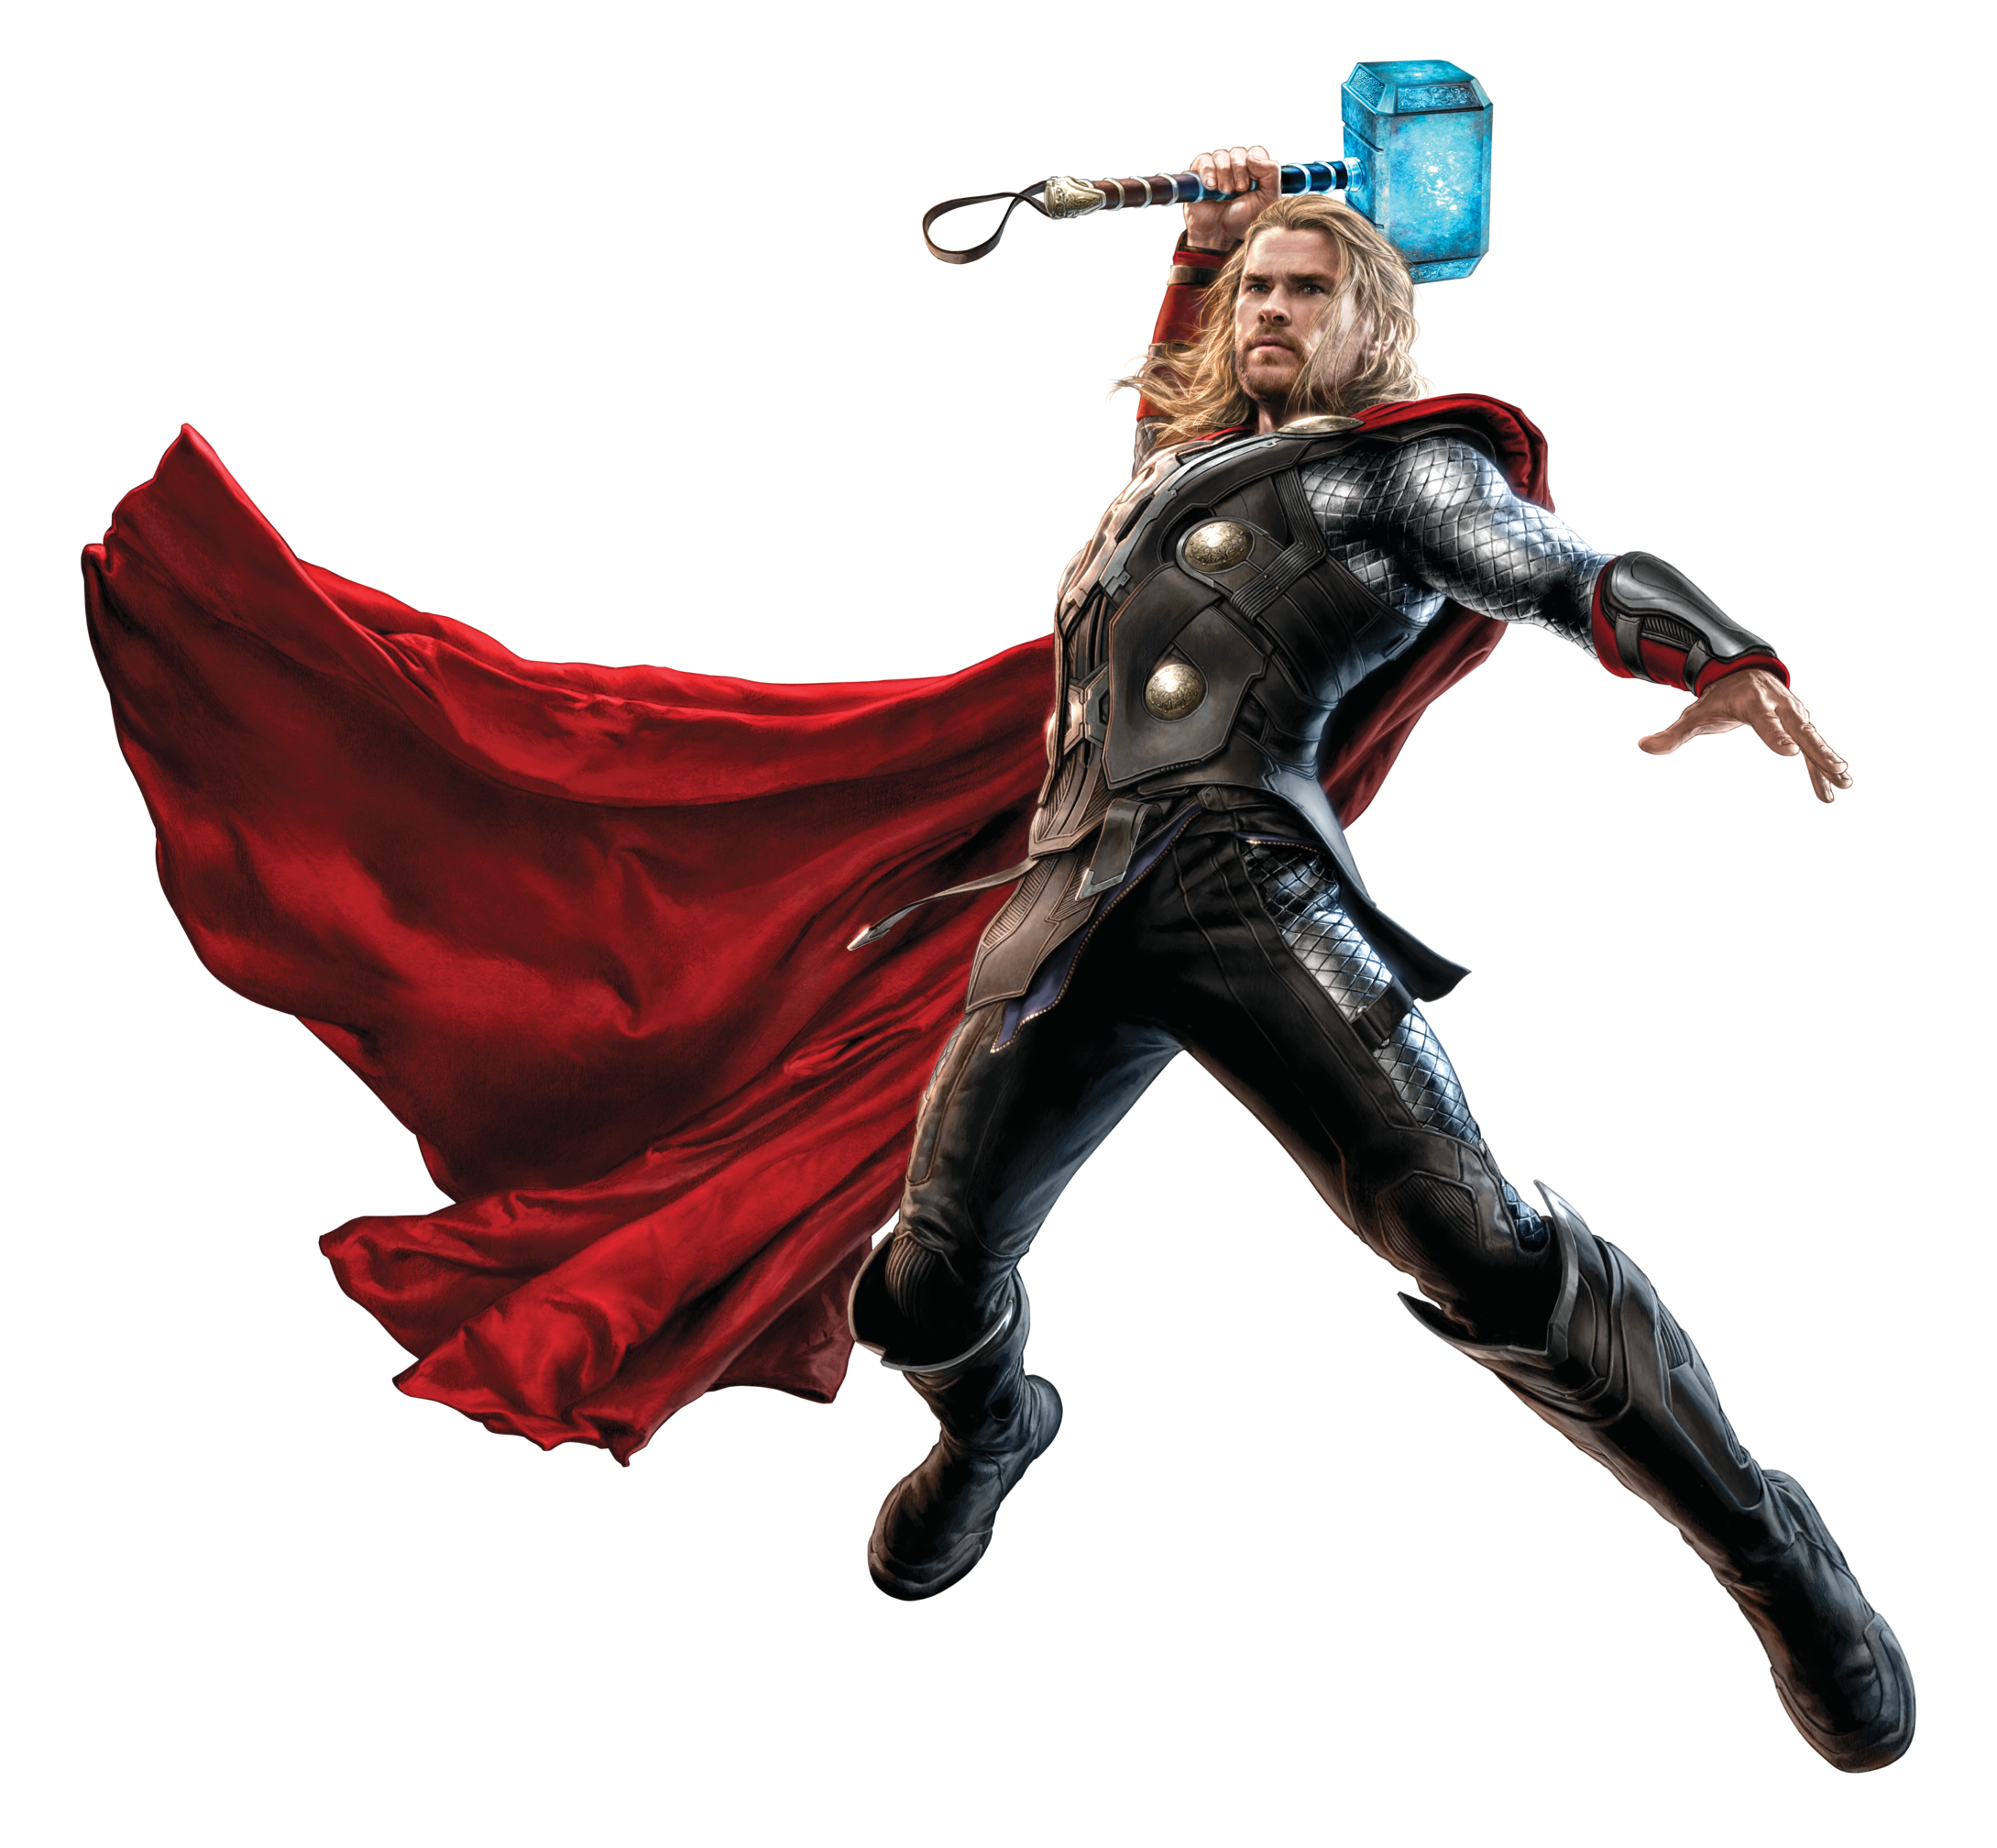 Thor marvel png. Hd transparent images pluspng